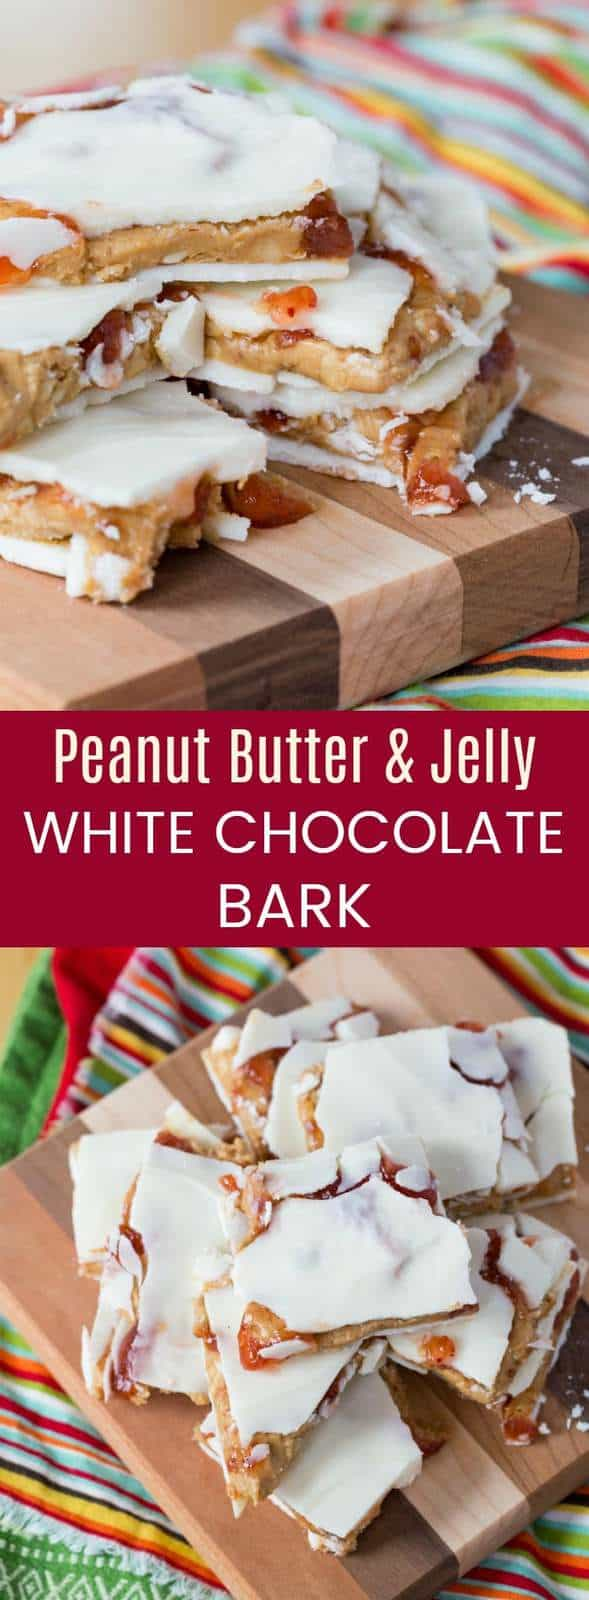 Peanut Butter and Jelly White Chocolate Bark - an easy holiday candy recipe stuffed with creamy peanut filling and swirls of strawberry jam makes the perfect gift. #AD #glutenfree #chocolatebark #peanutbutterandjelly